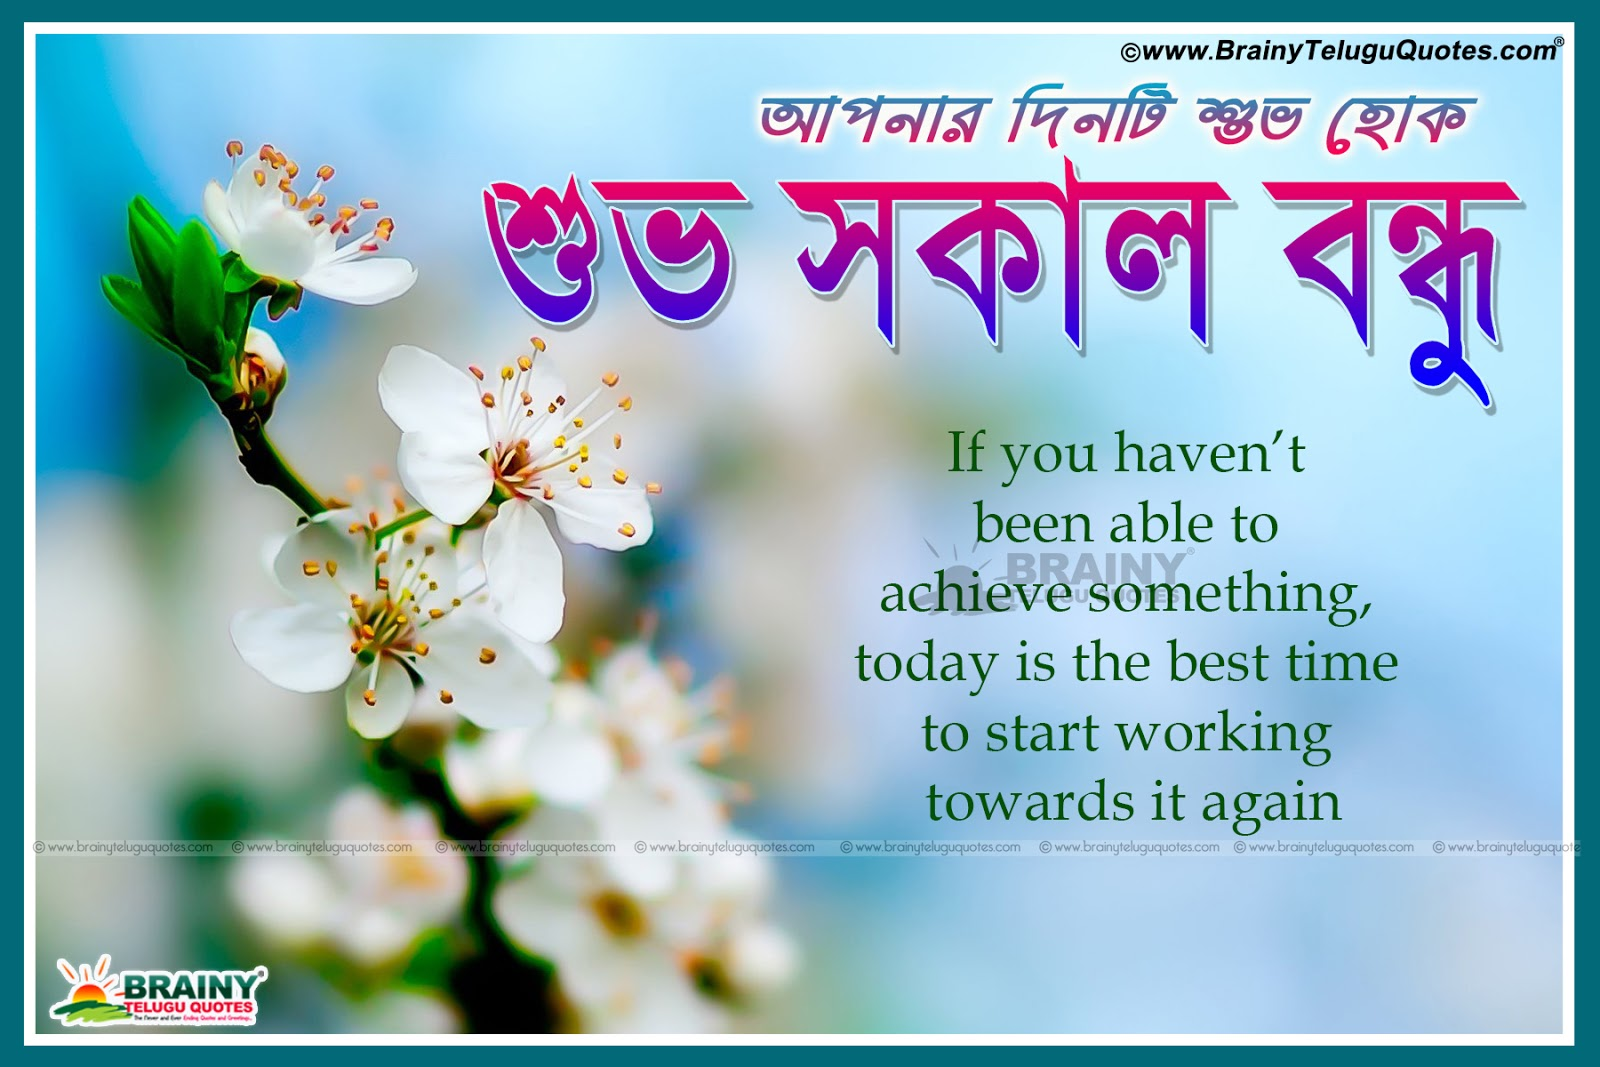 Good Morning bengali Quotations wishes and Messages Wallpapers